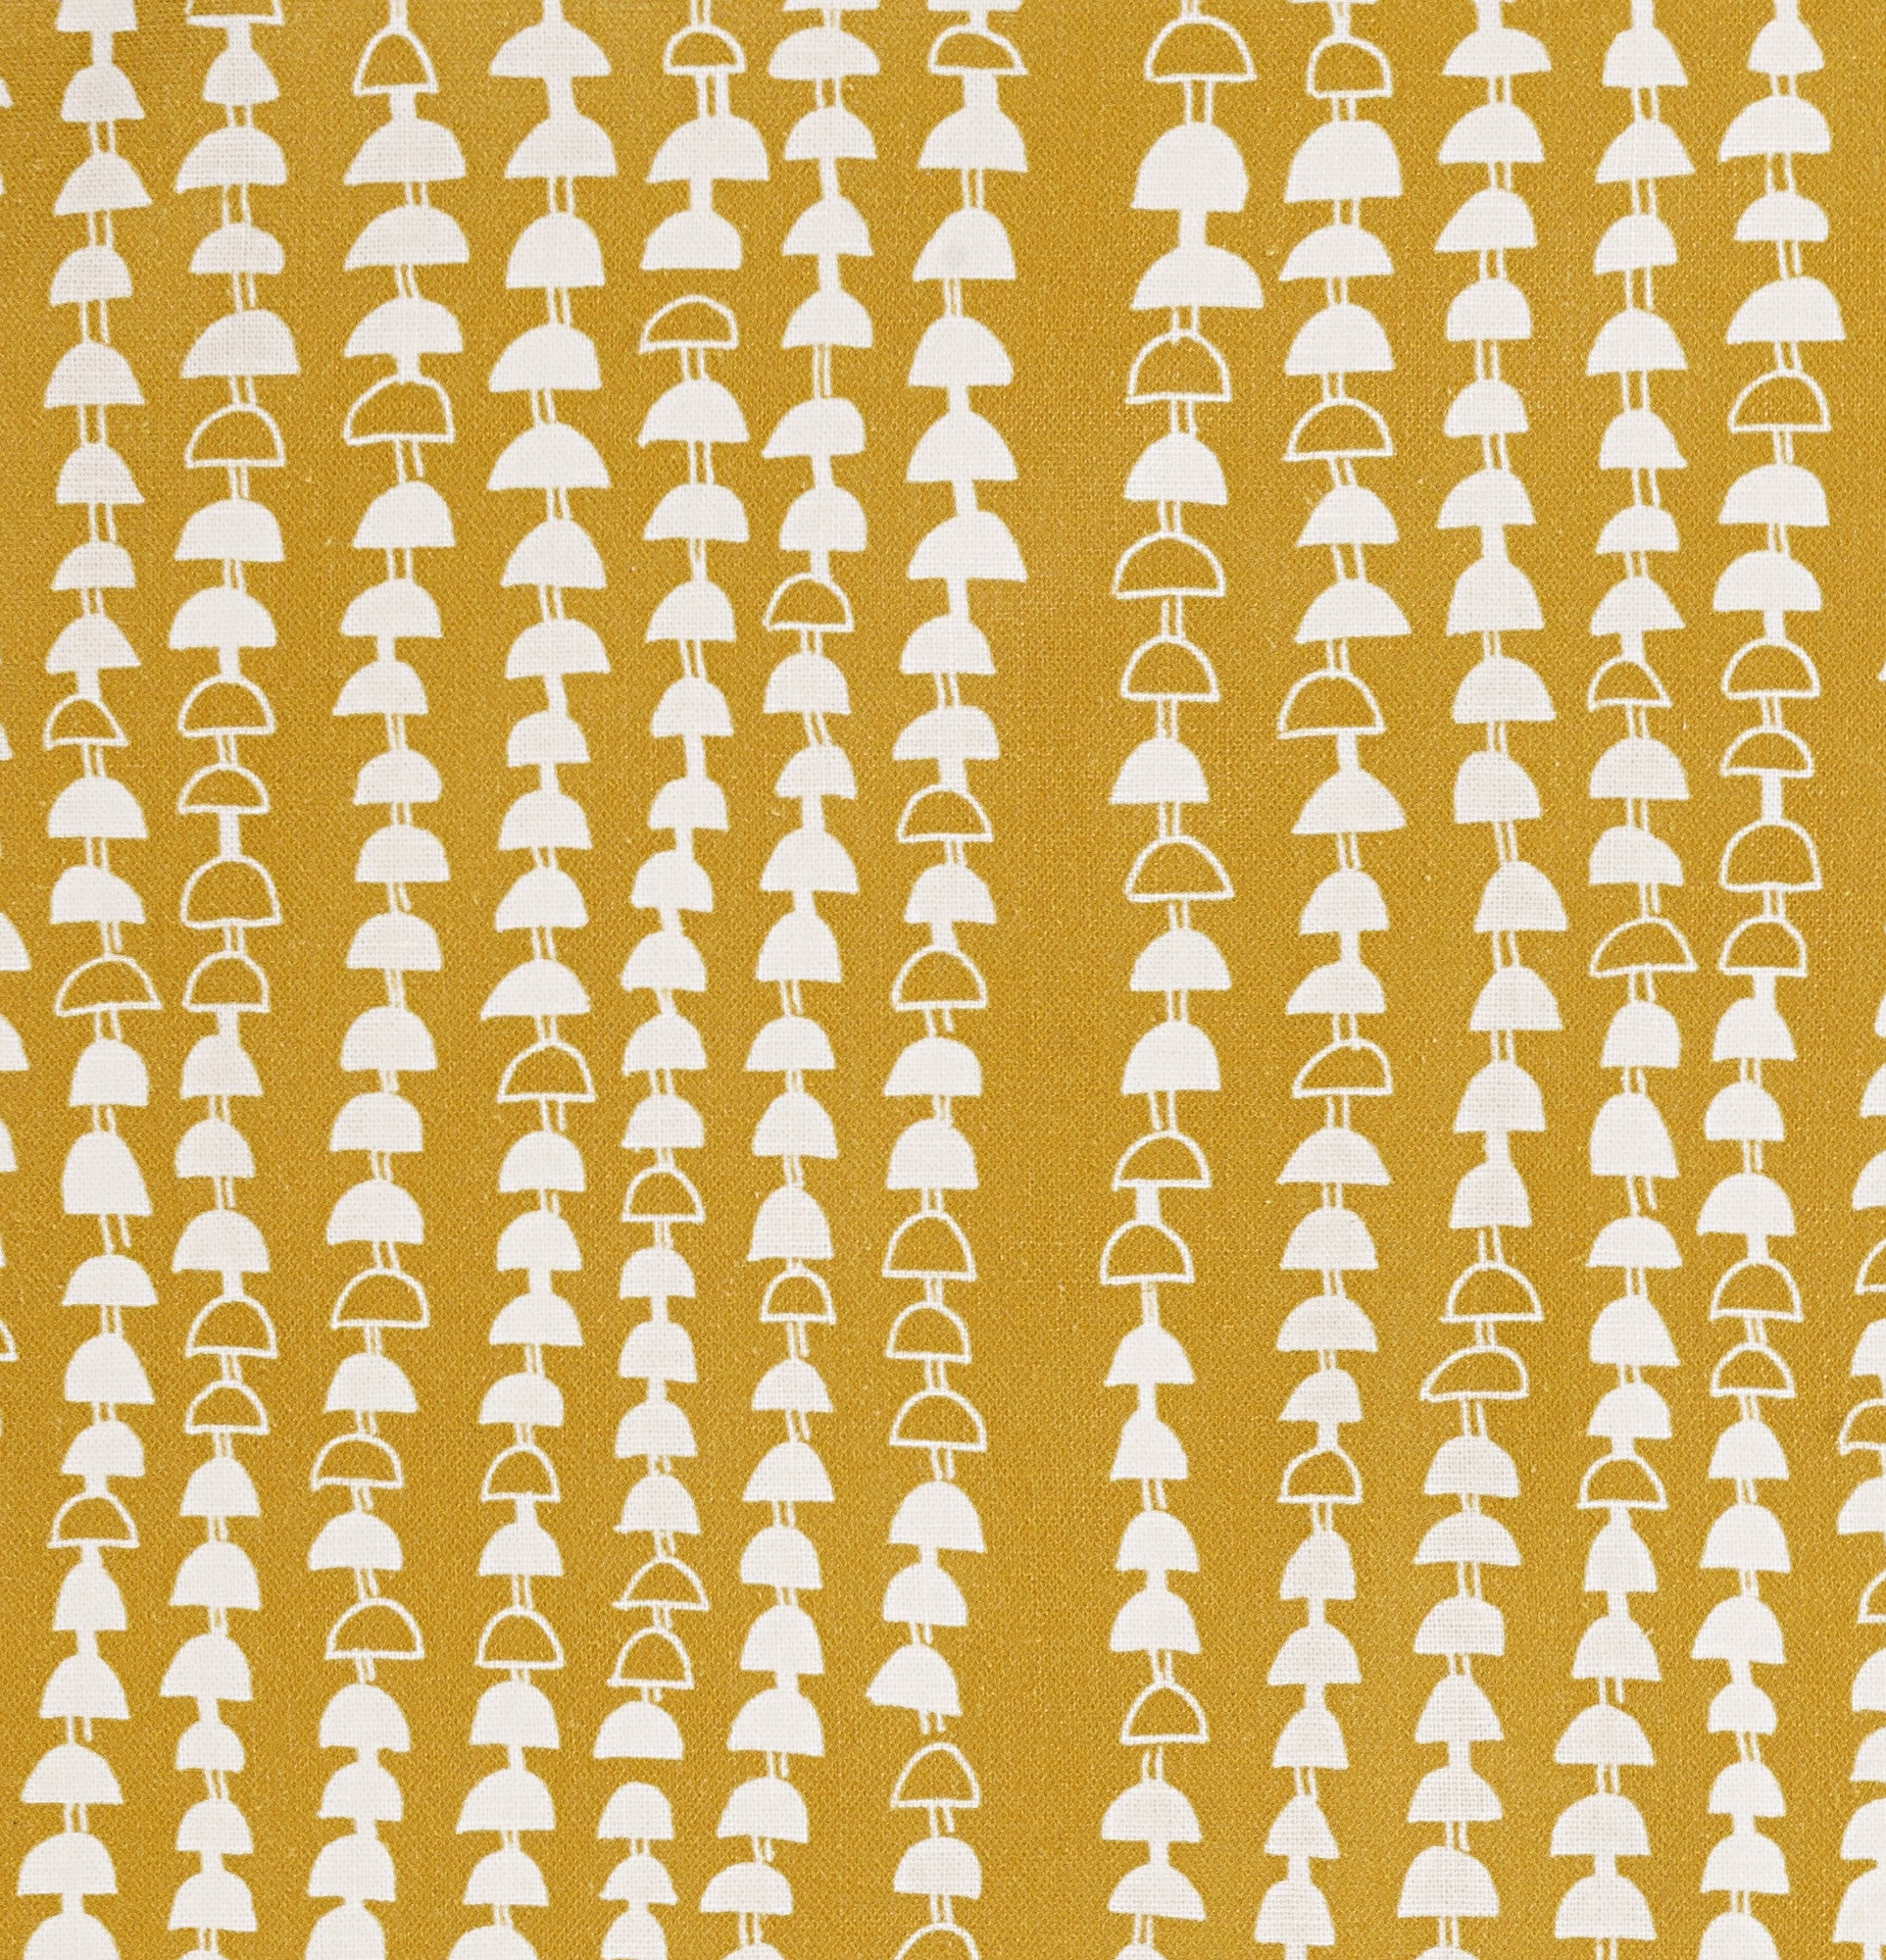 Hopi Graphic Strung Bead Pattern Linen Cotton Designer Home Decor Fabric for curtains, blinds, upholstery in Mustard Gold ships from Canada, USA